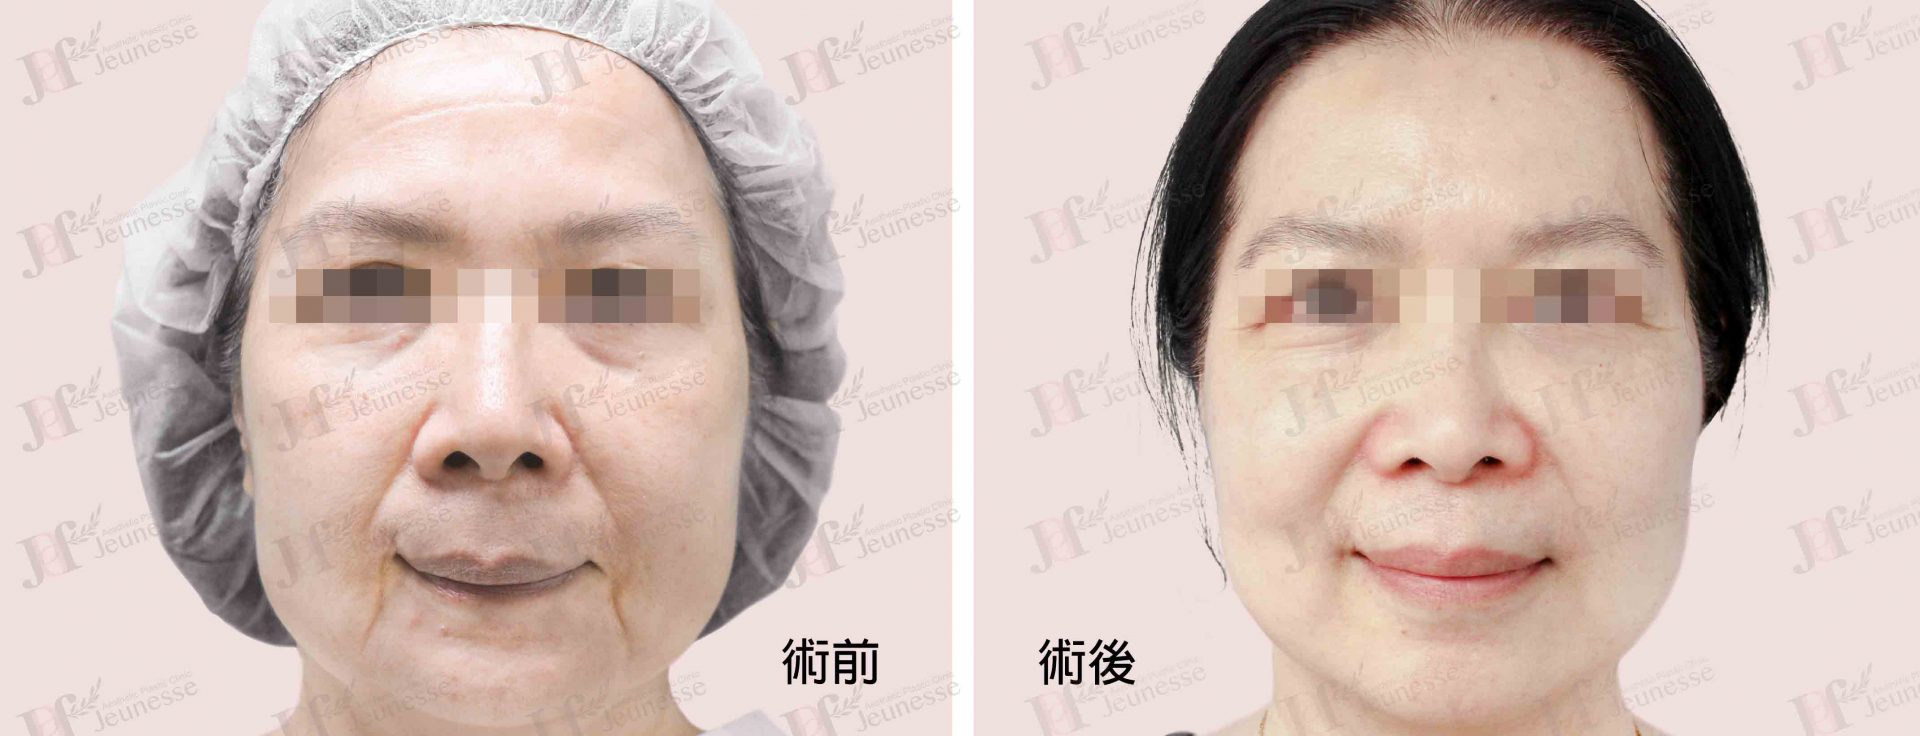 Midface lifting case 1 正面 -浮水印